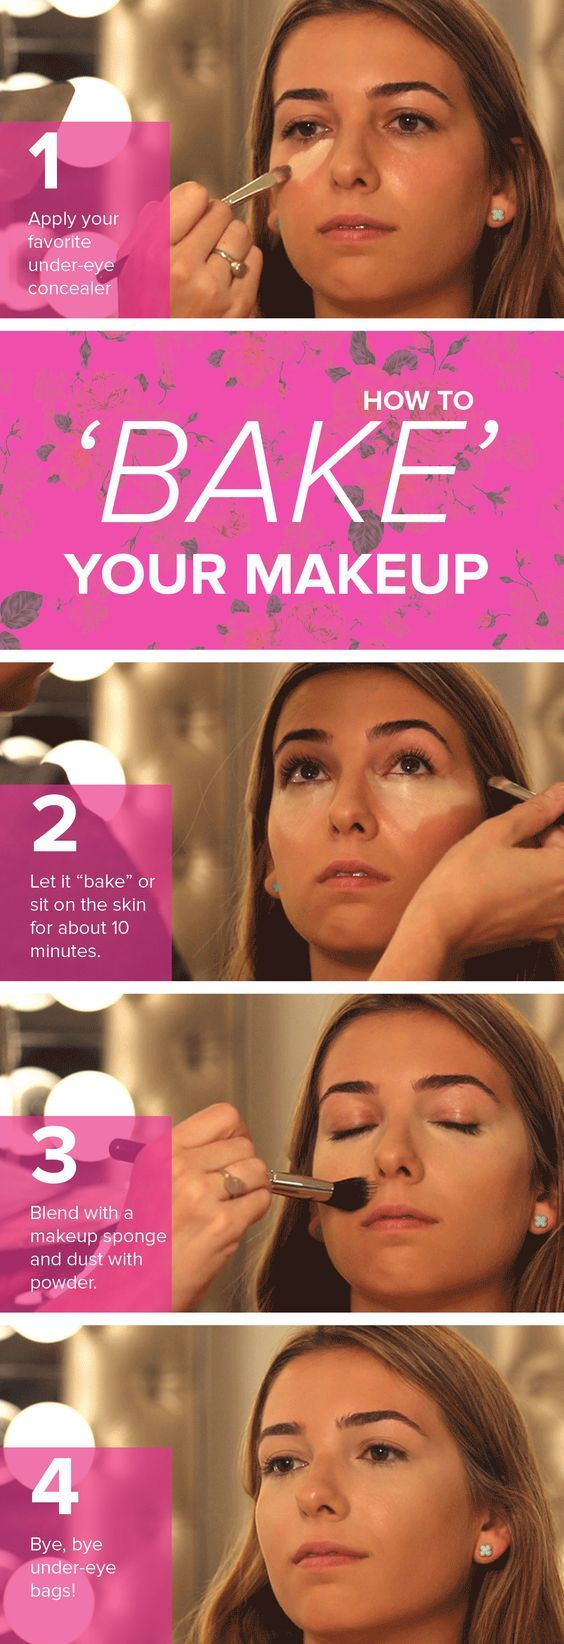 "Make your face glow and ensure your look lasts all day with this trendy technique, called ""baking."" By letting your makeup set and finishing with a translucent powder, your look will last longer."